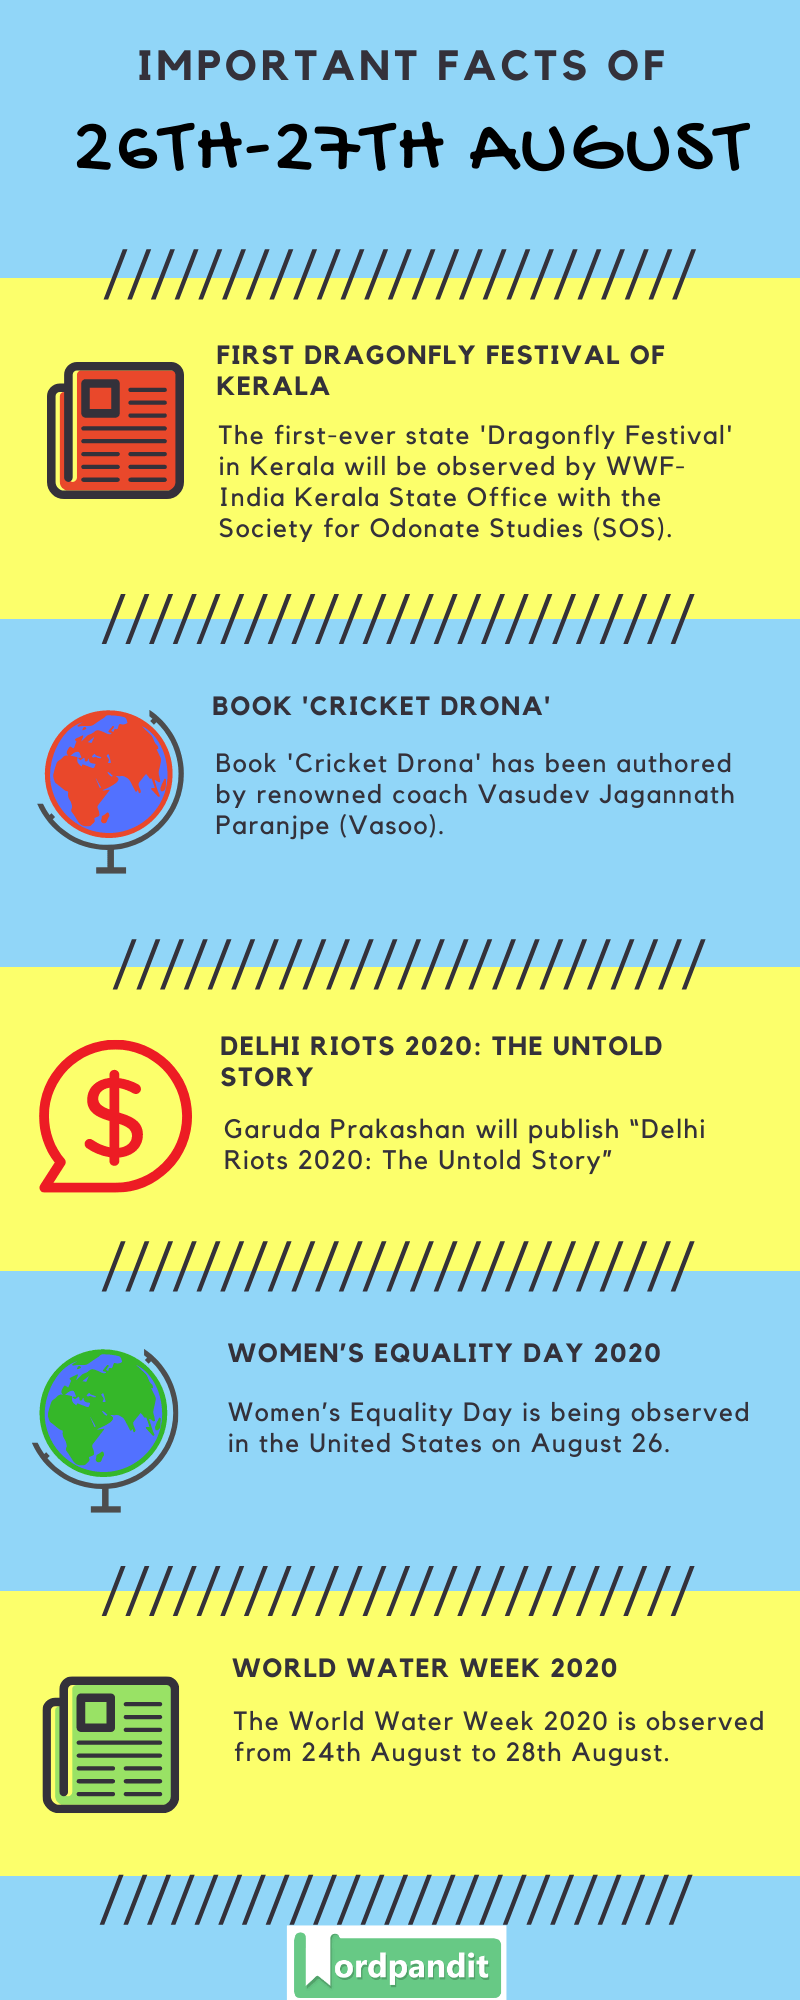 Daily Current Affairs 26th-27th August 2020 Current Affairs Quiz 26th-27th August 2020 Current Affairs Infographic